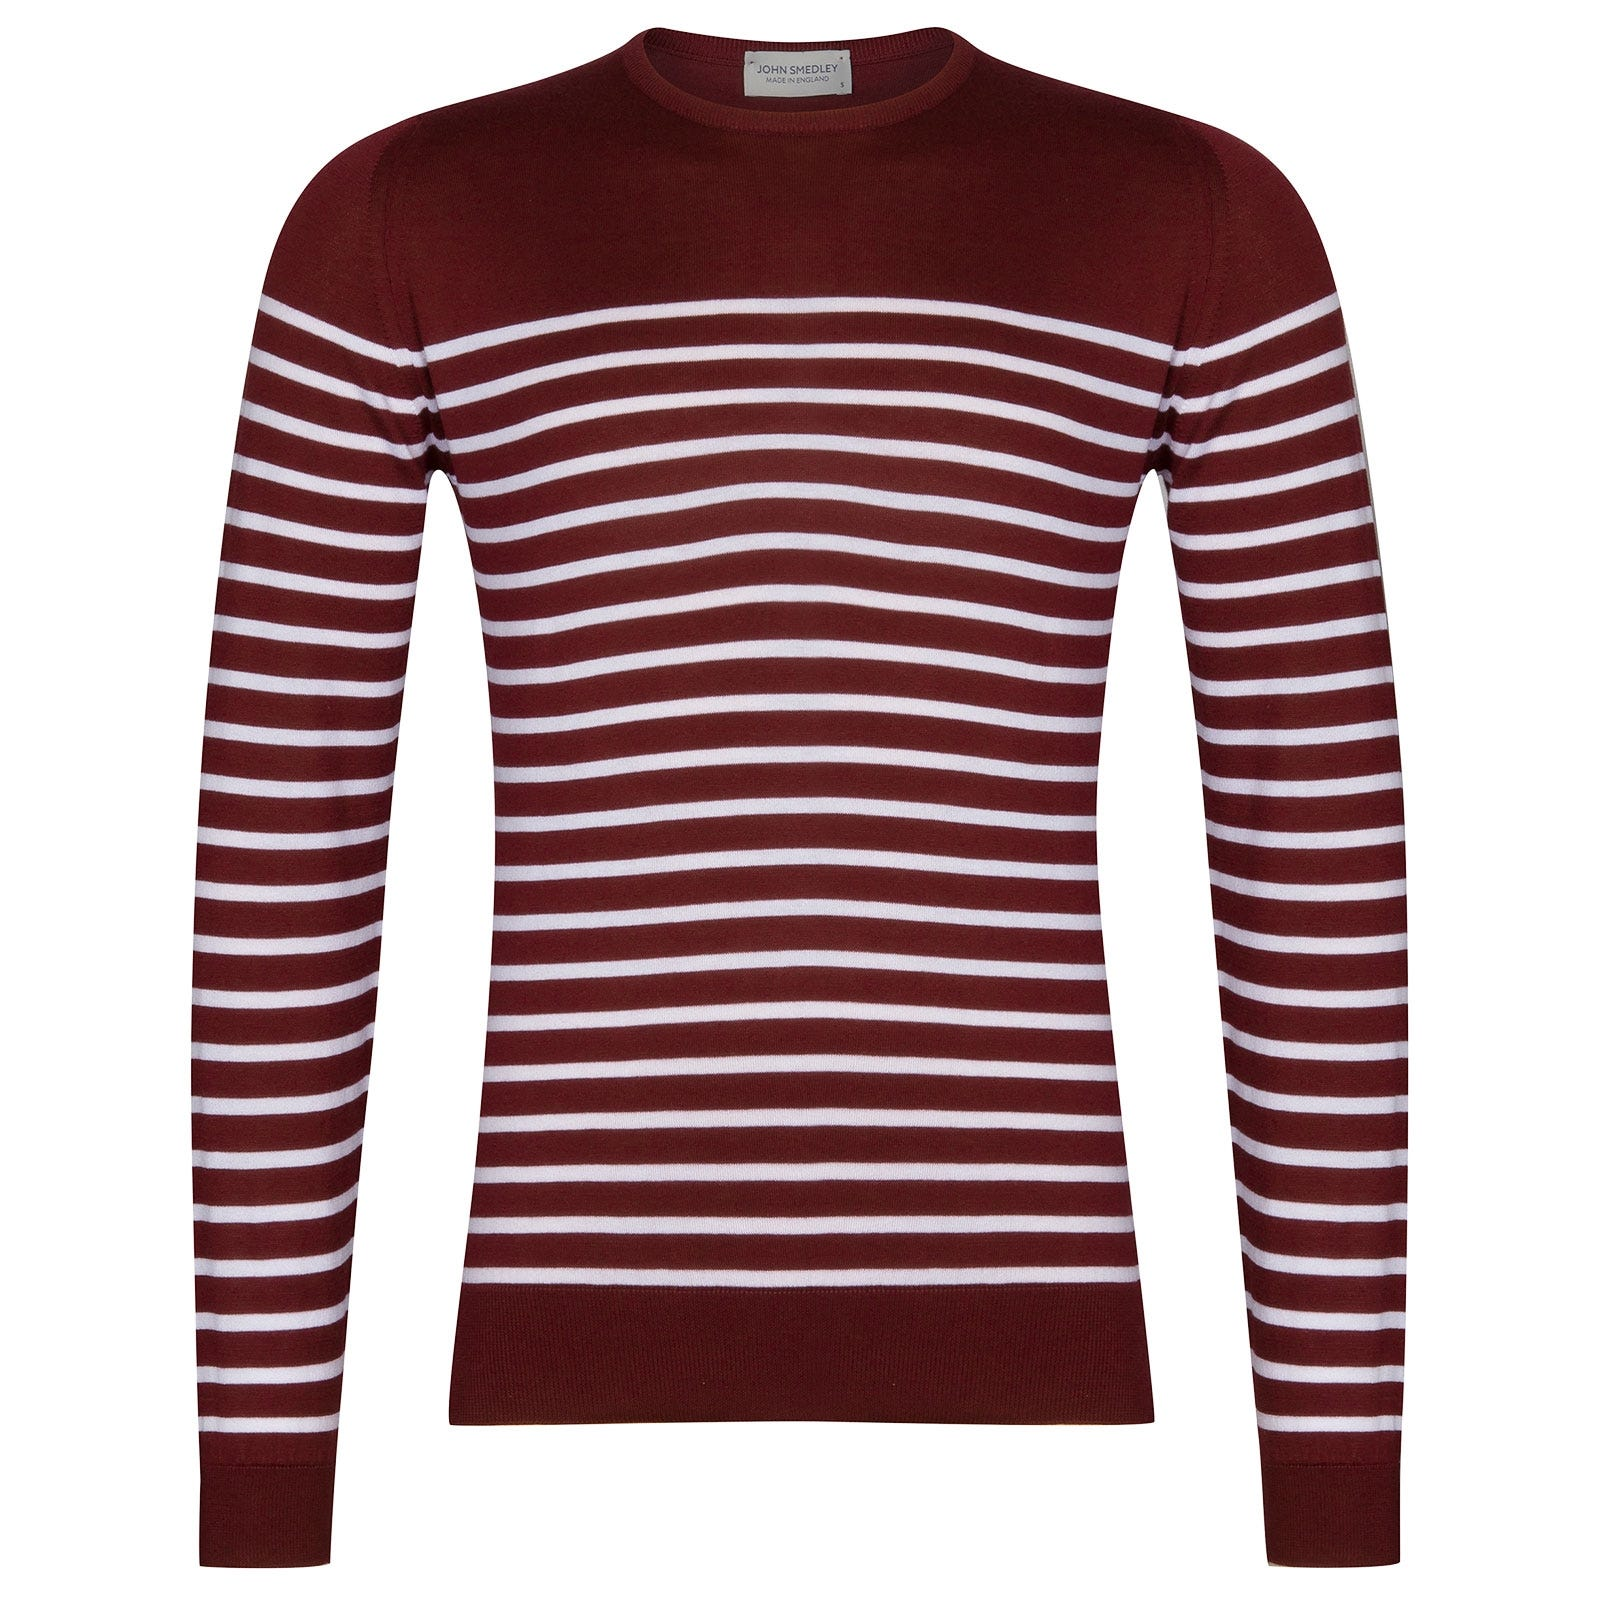 John Smedley Redfree Sea Island Cotton Pullover in Burgundy Grain-XXL